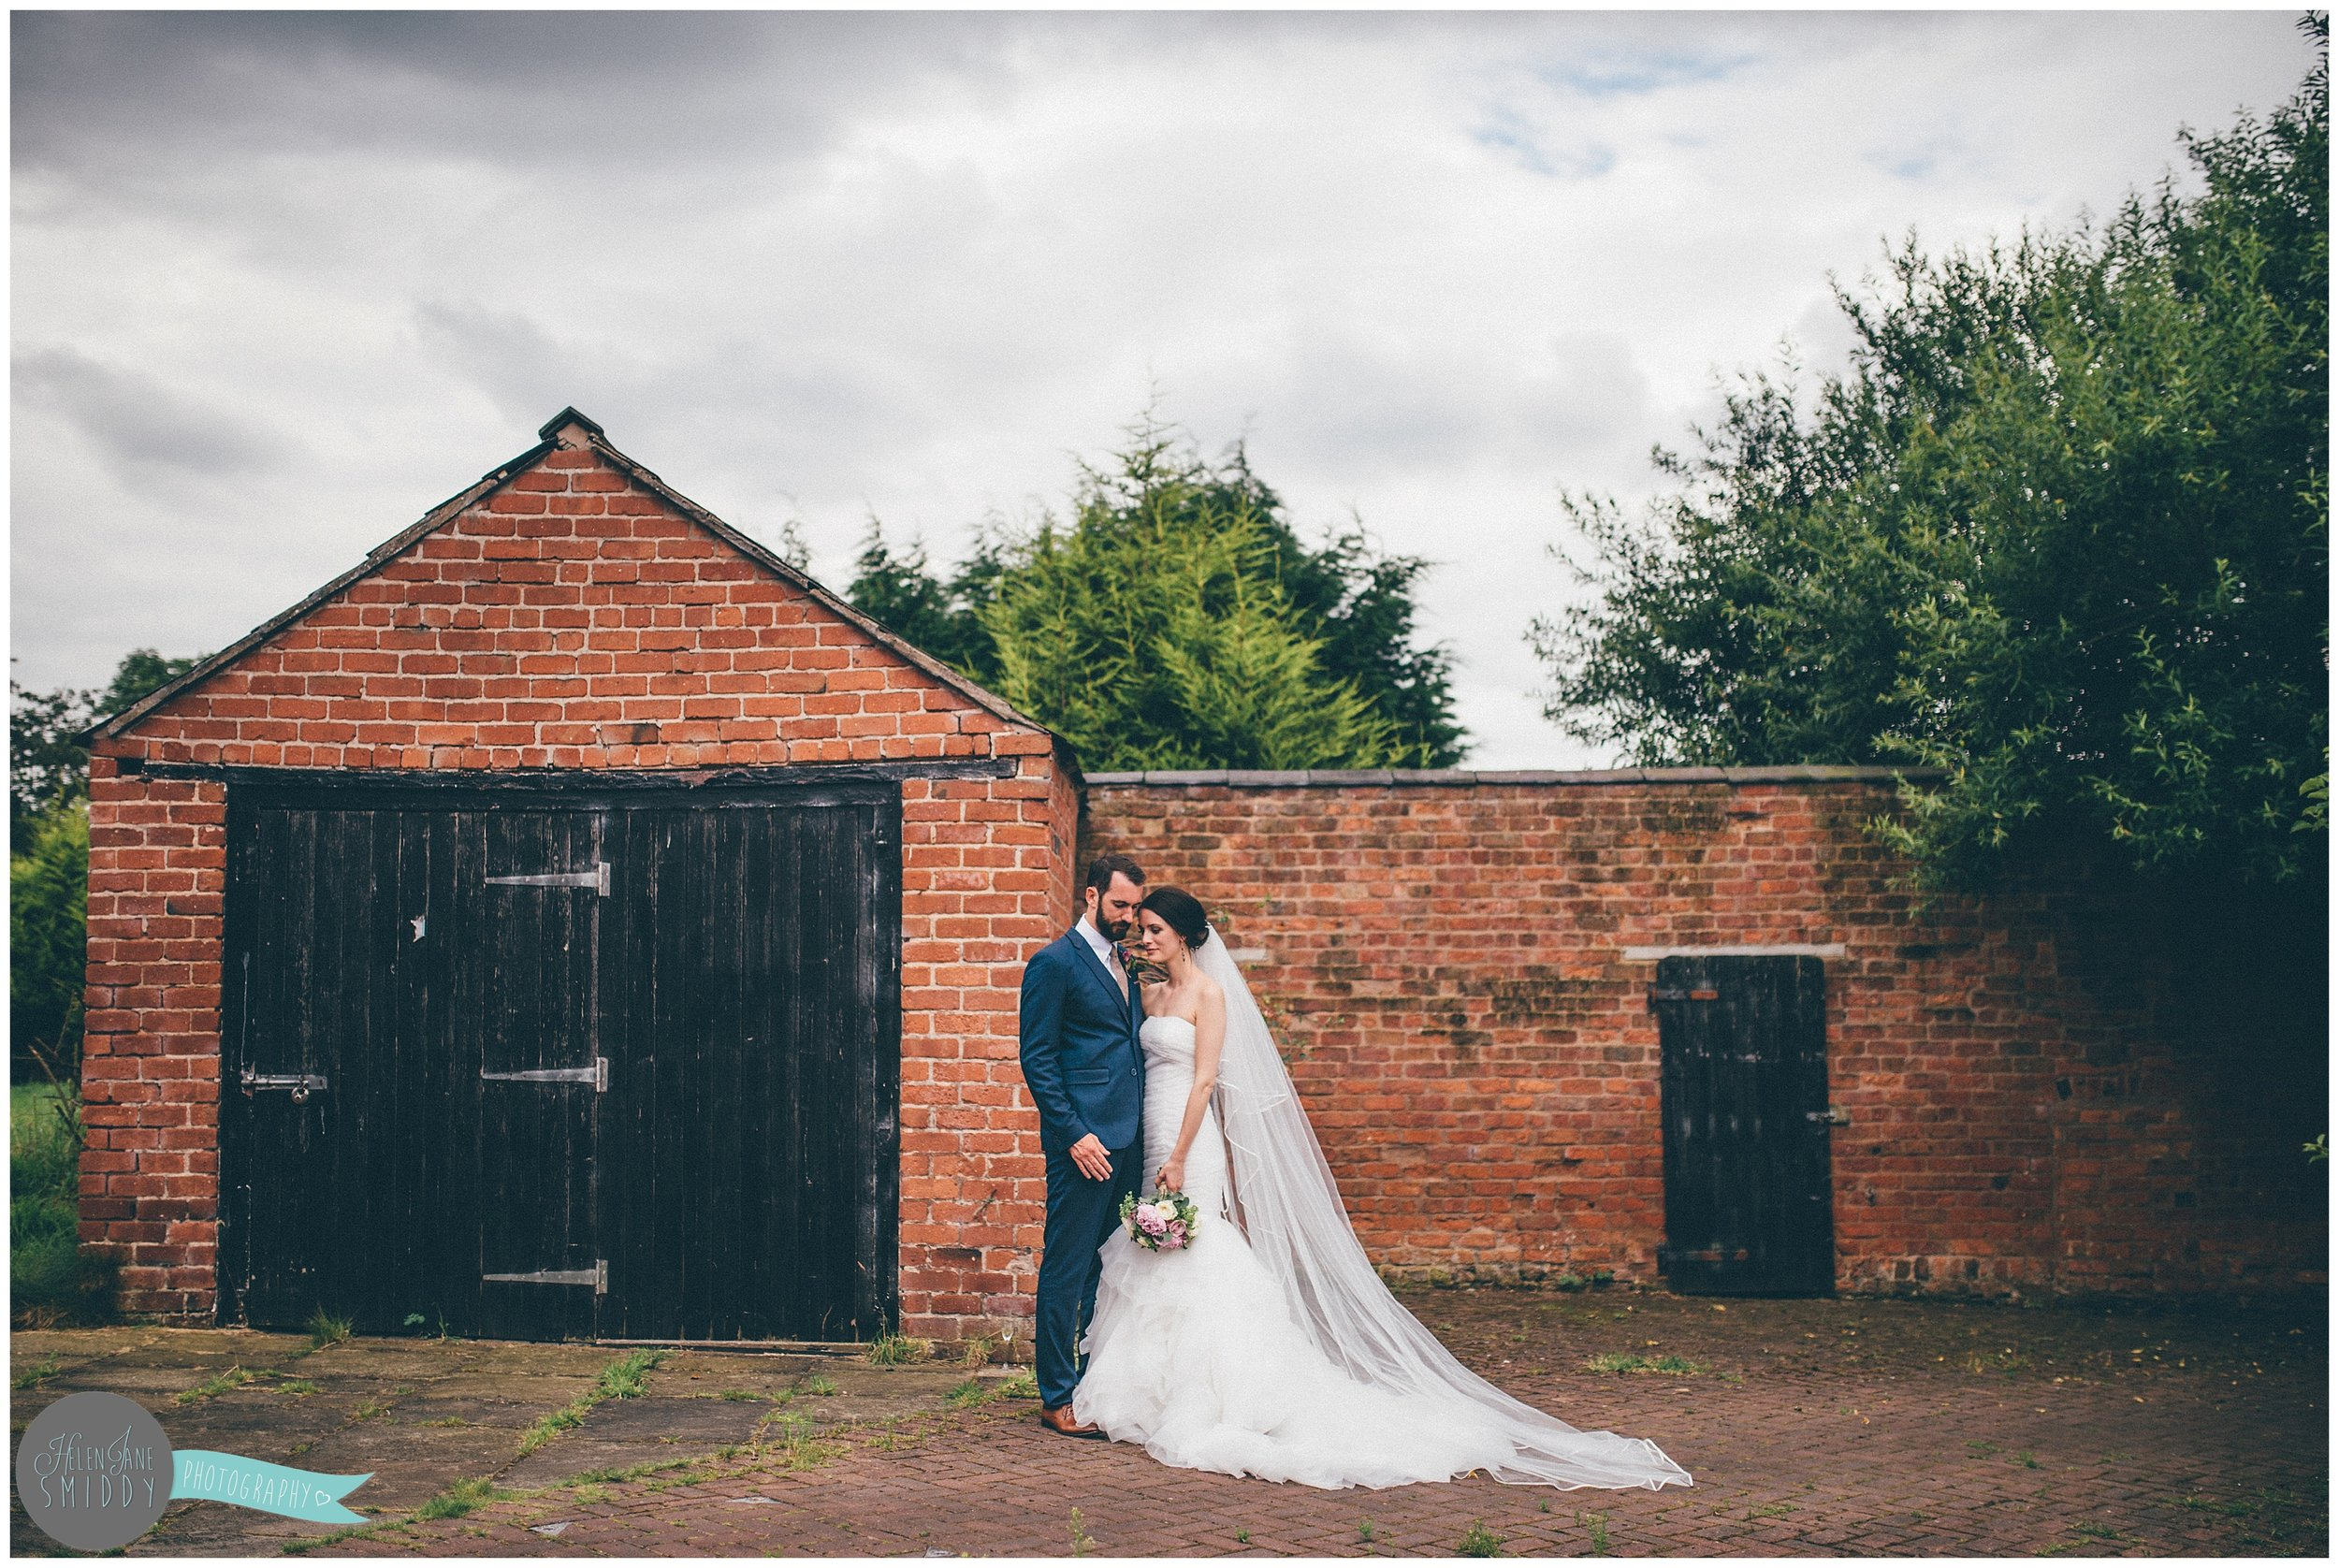 cheshire-runcorn-town-hall-chester-chesterfields-wedding-weddingphotography-photography-blue-skies-love-wedding-day-weddingday-wedding-gown-weddingdress-flowers-guest-manofhonour-maidofhonour-confetti-in-love-couple-shots-cake-cupcakes-weddingcake